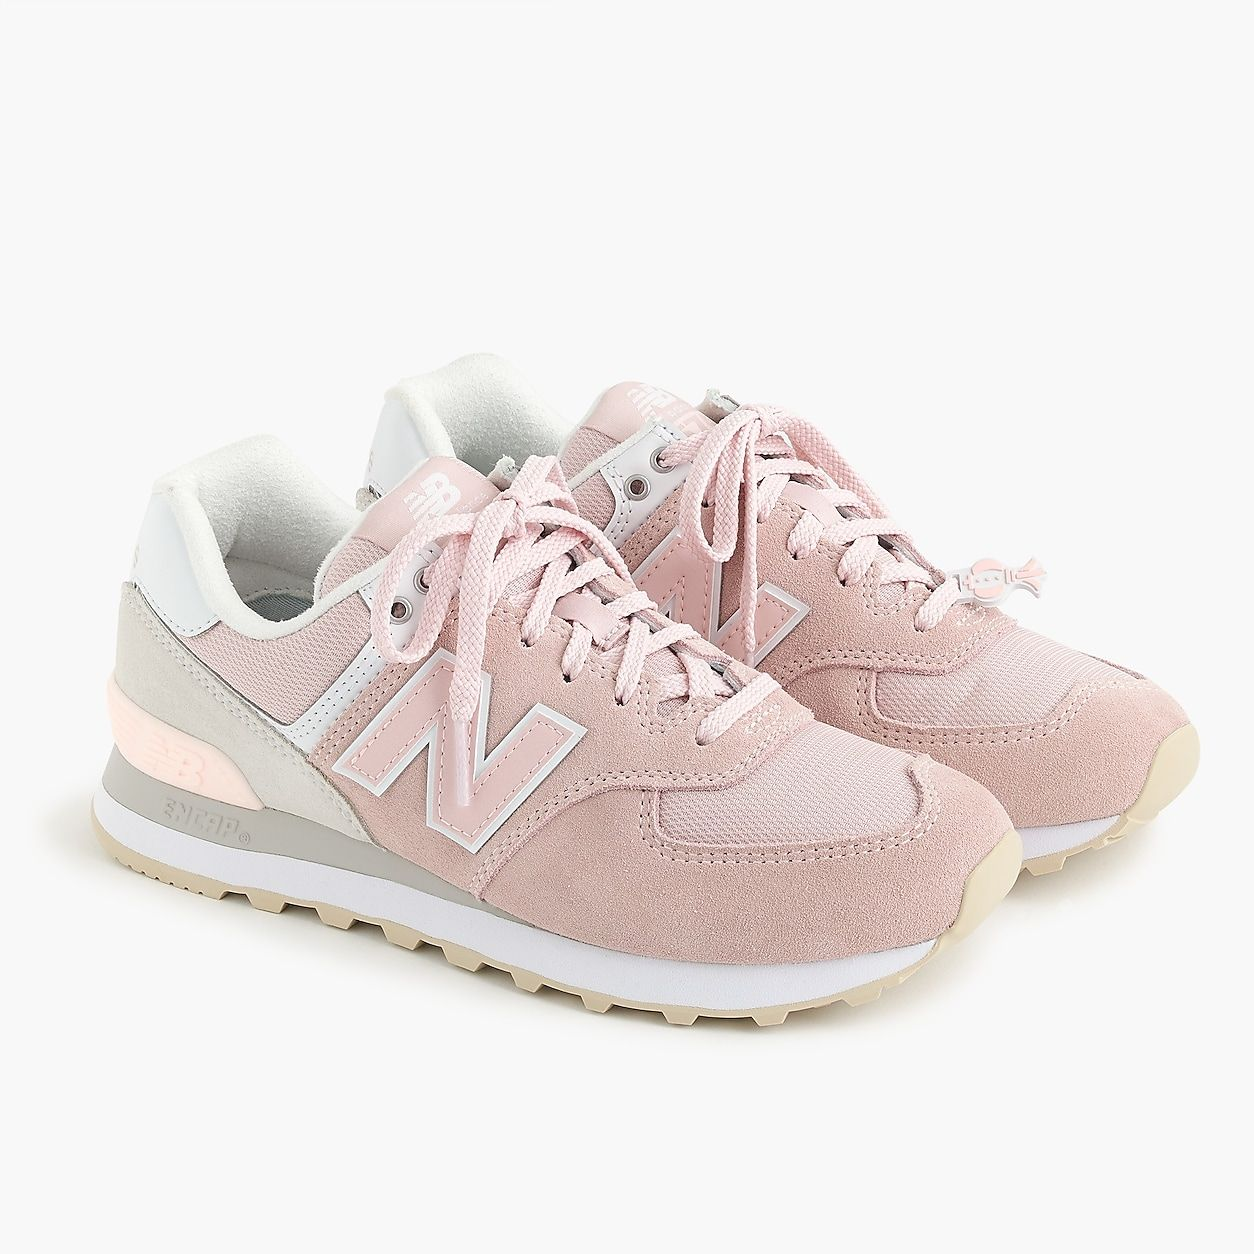 New Balance 574 Sneakers | Womens sneakers, New balance ...